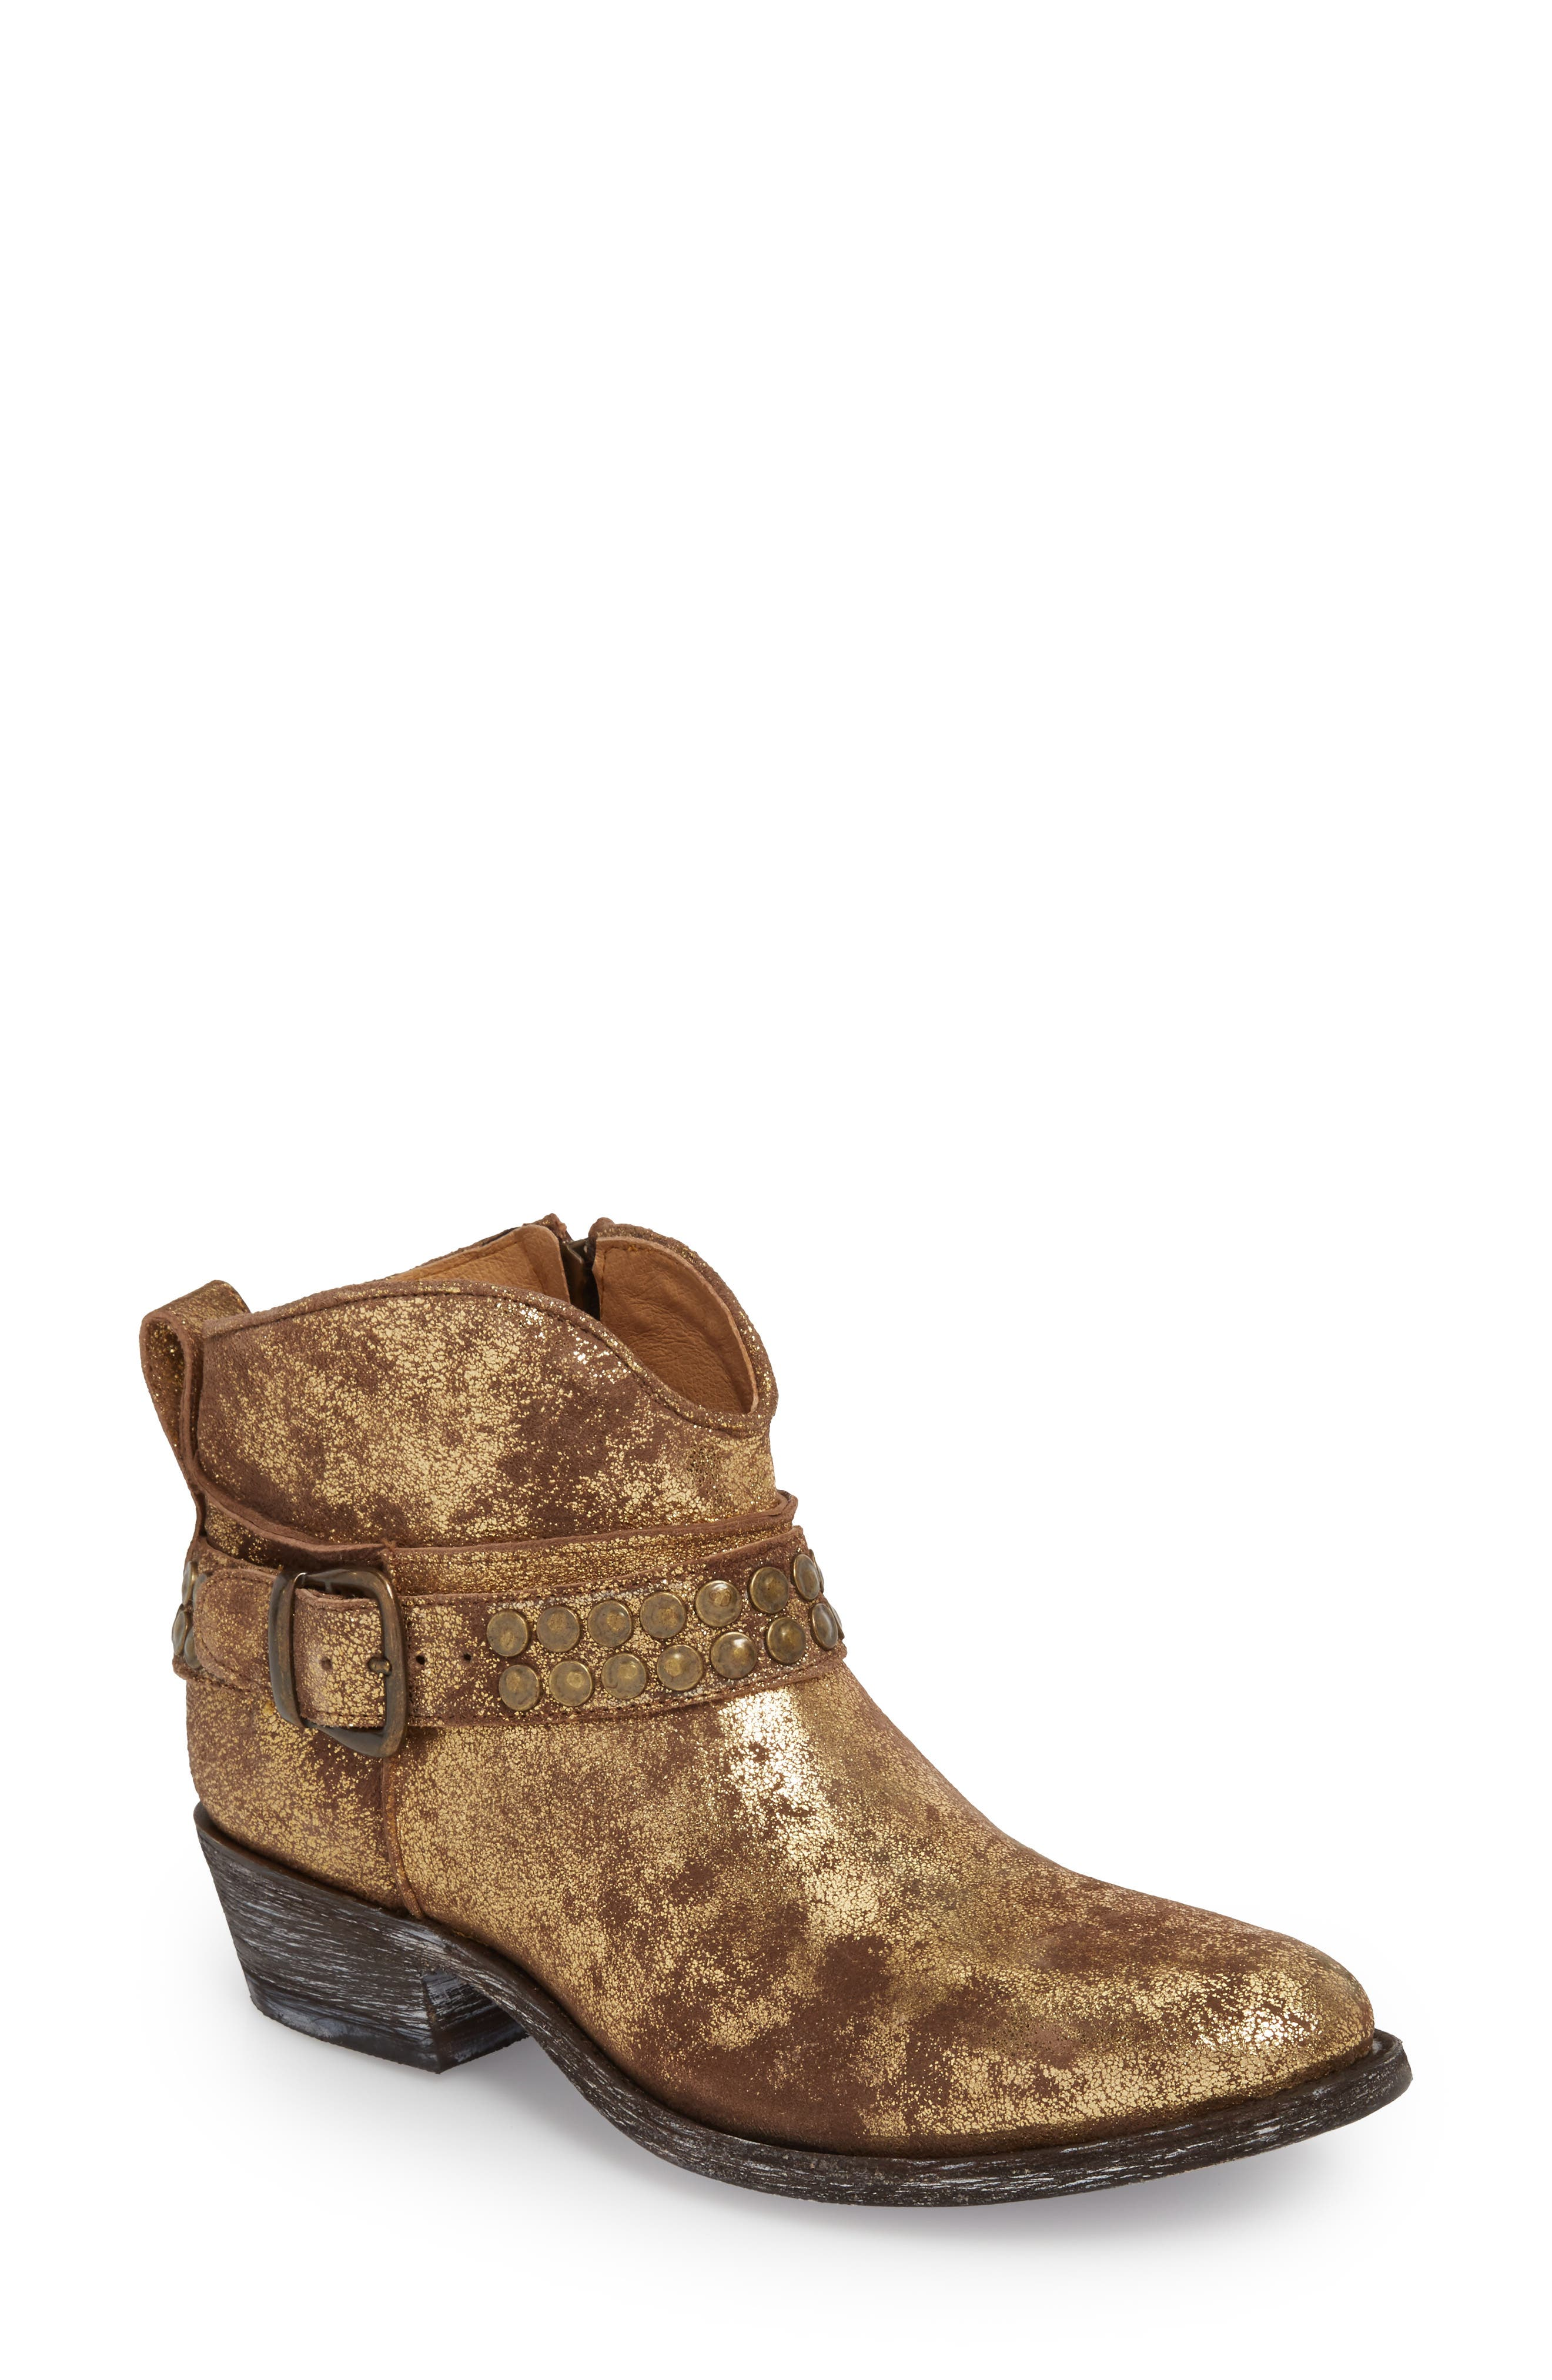 Serene Bootie,                         Main,                         color, Gold Suede